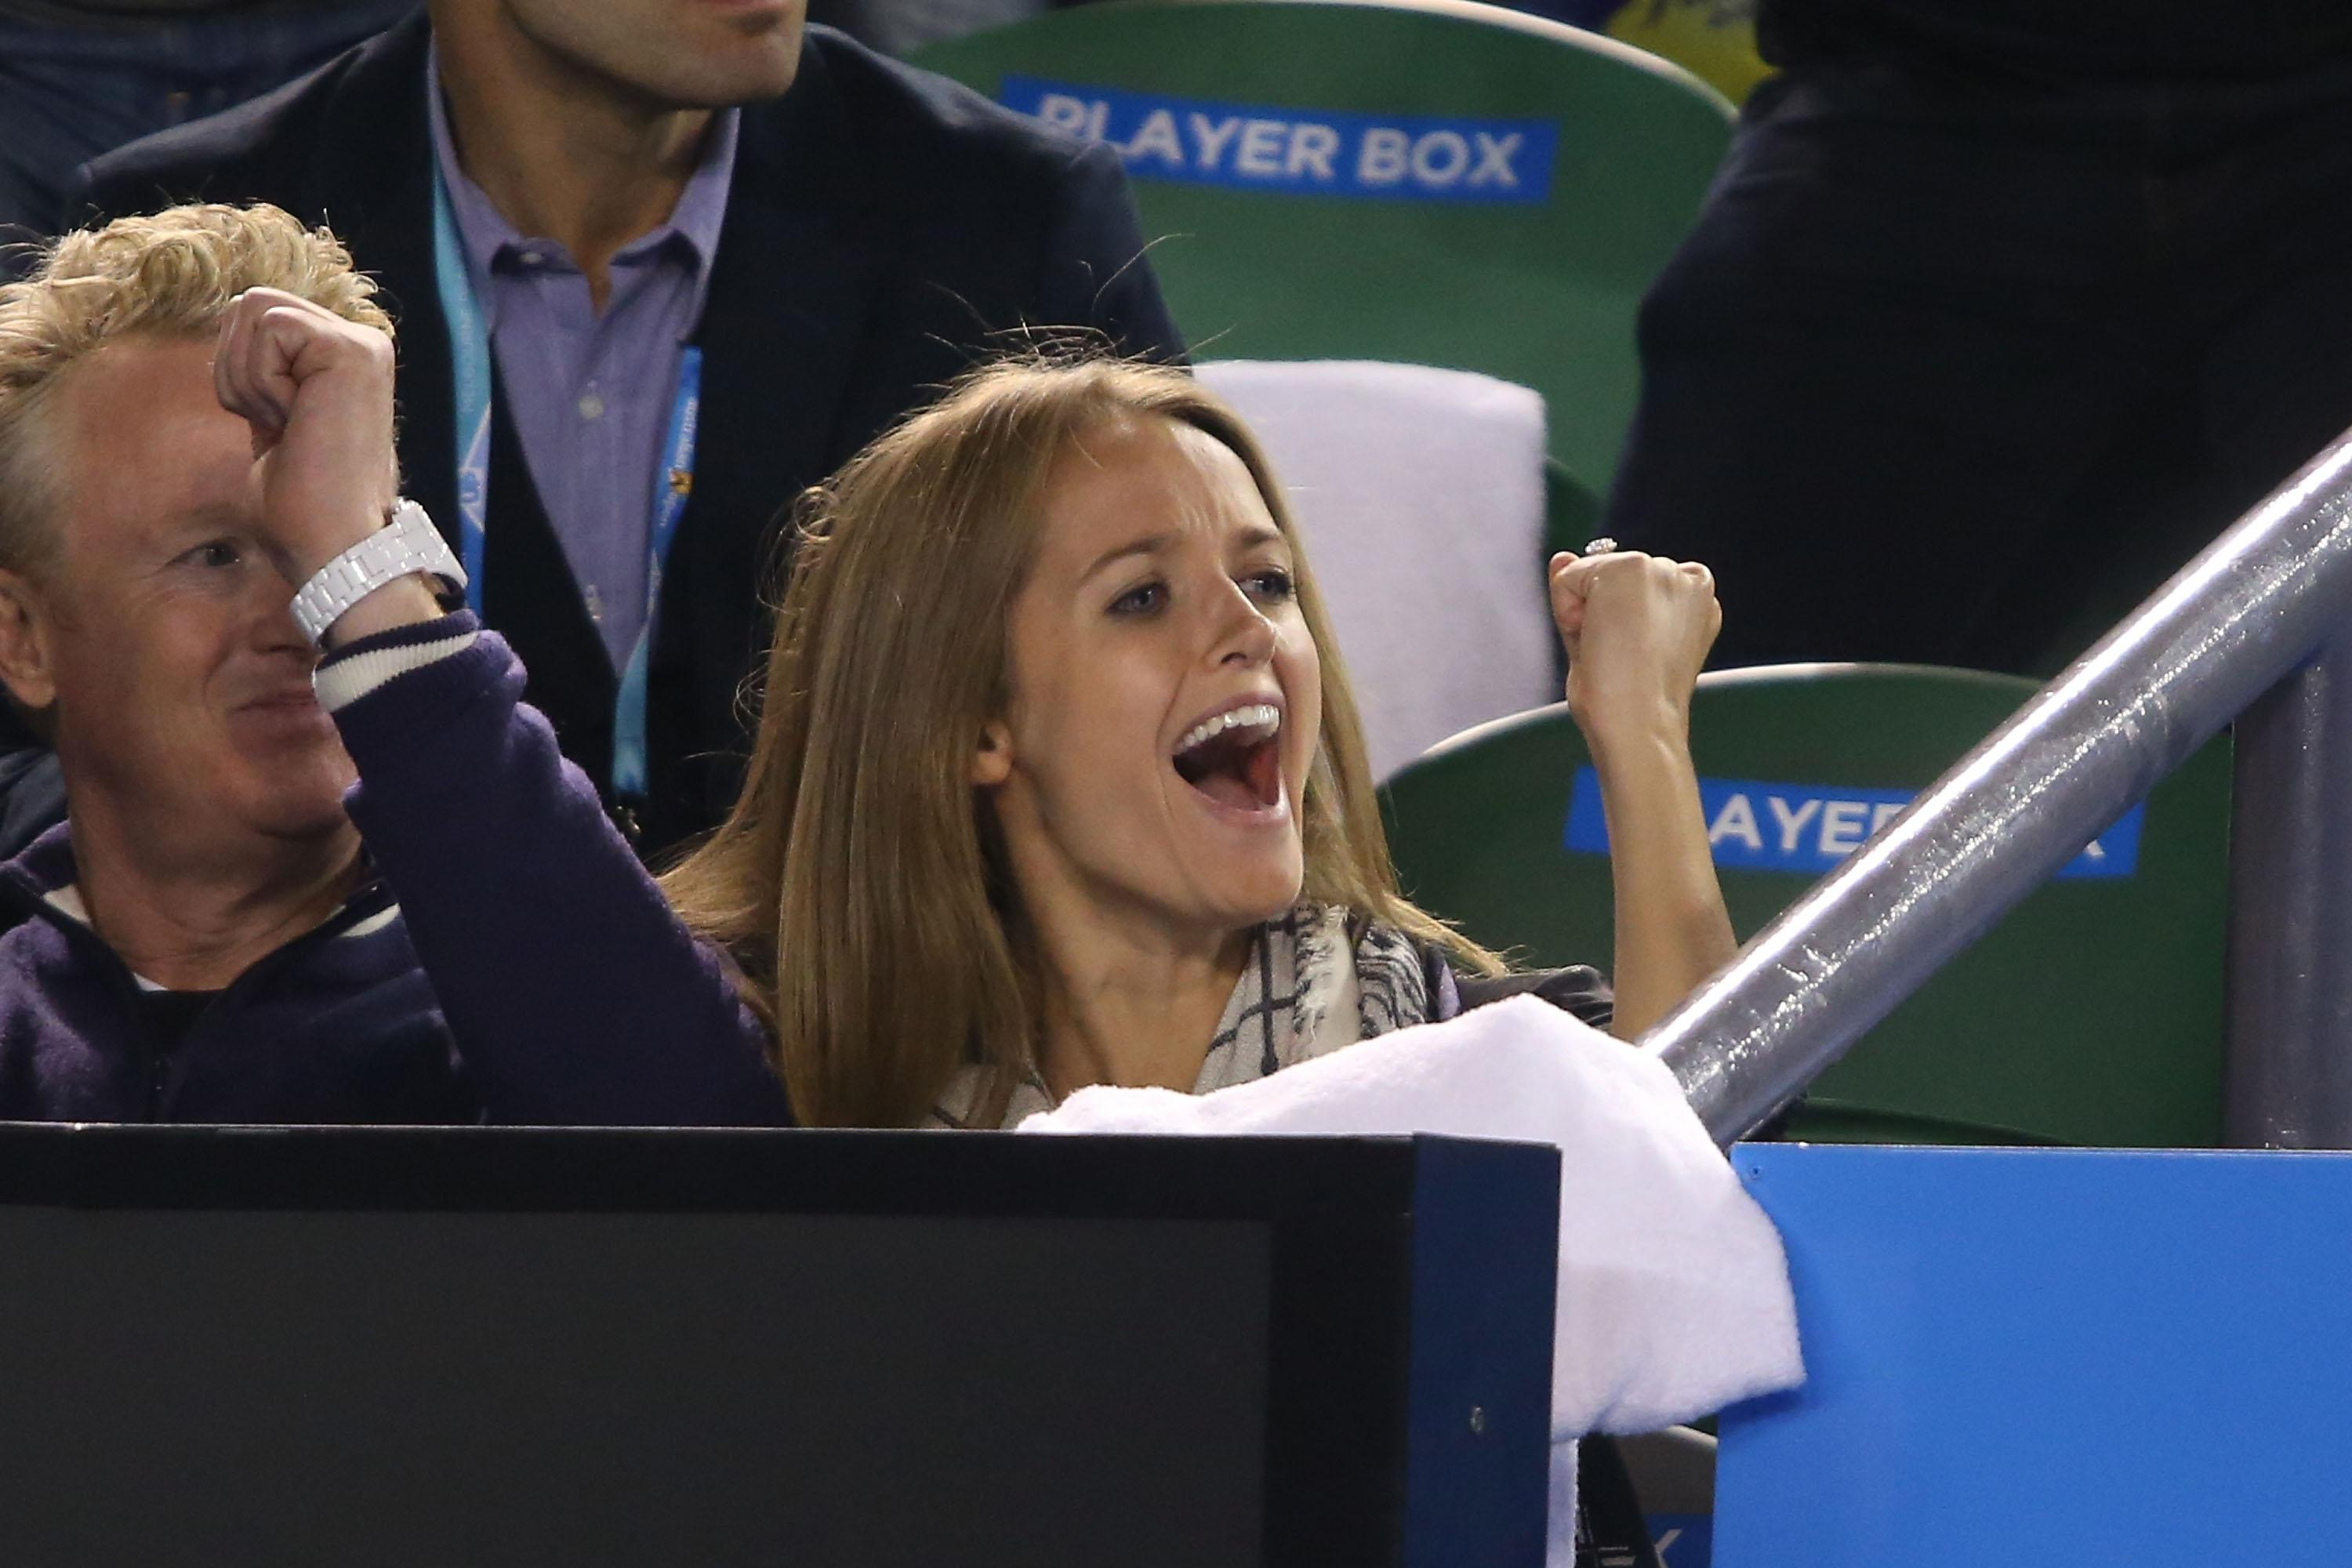 Andy Murray wins his semifinal match, but fiancee Kim Sears steals the show